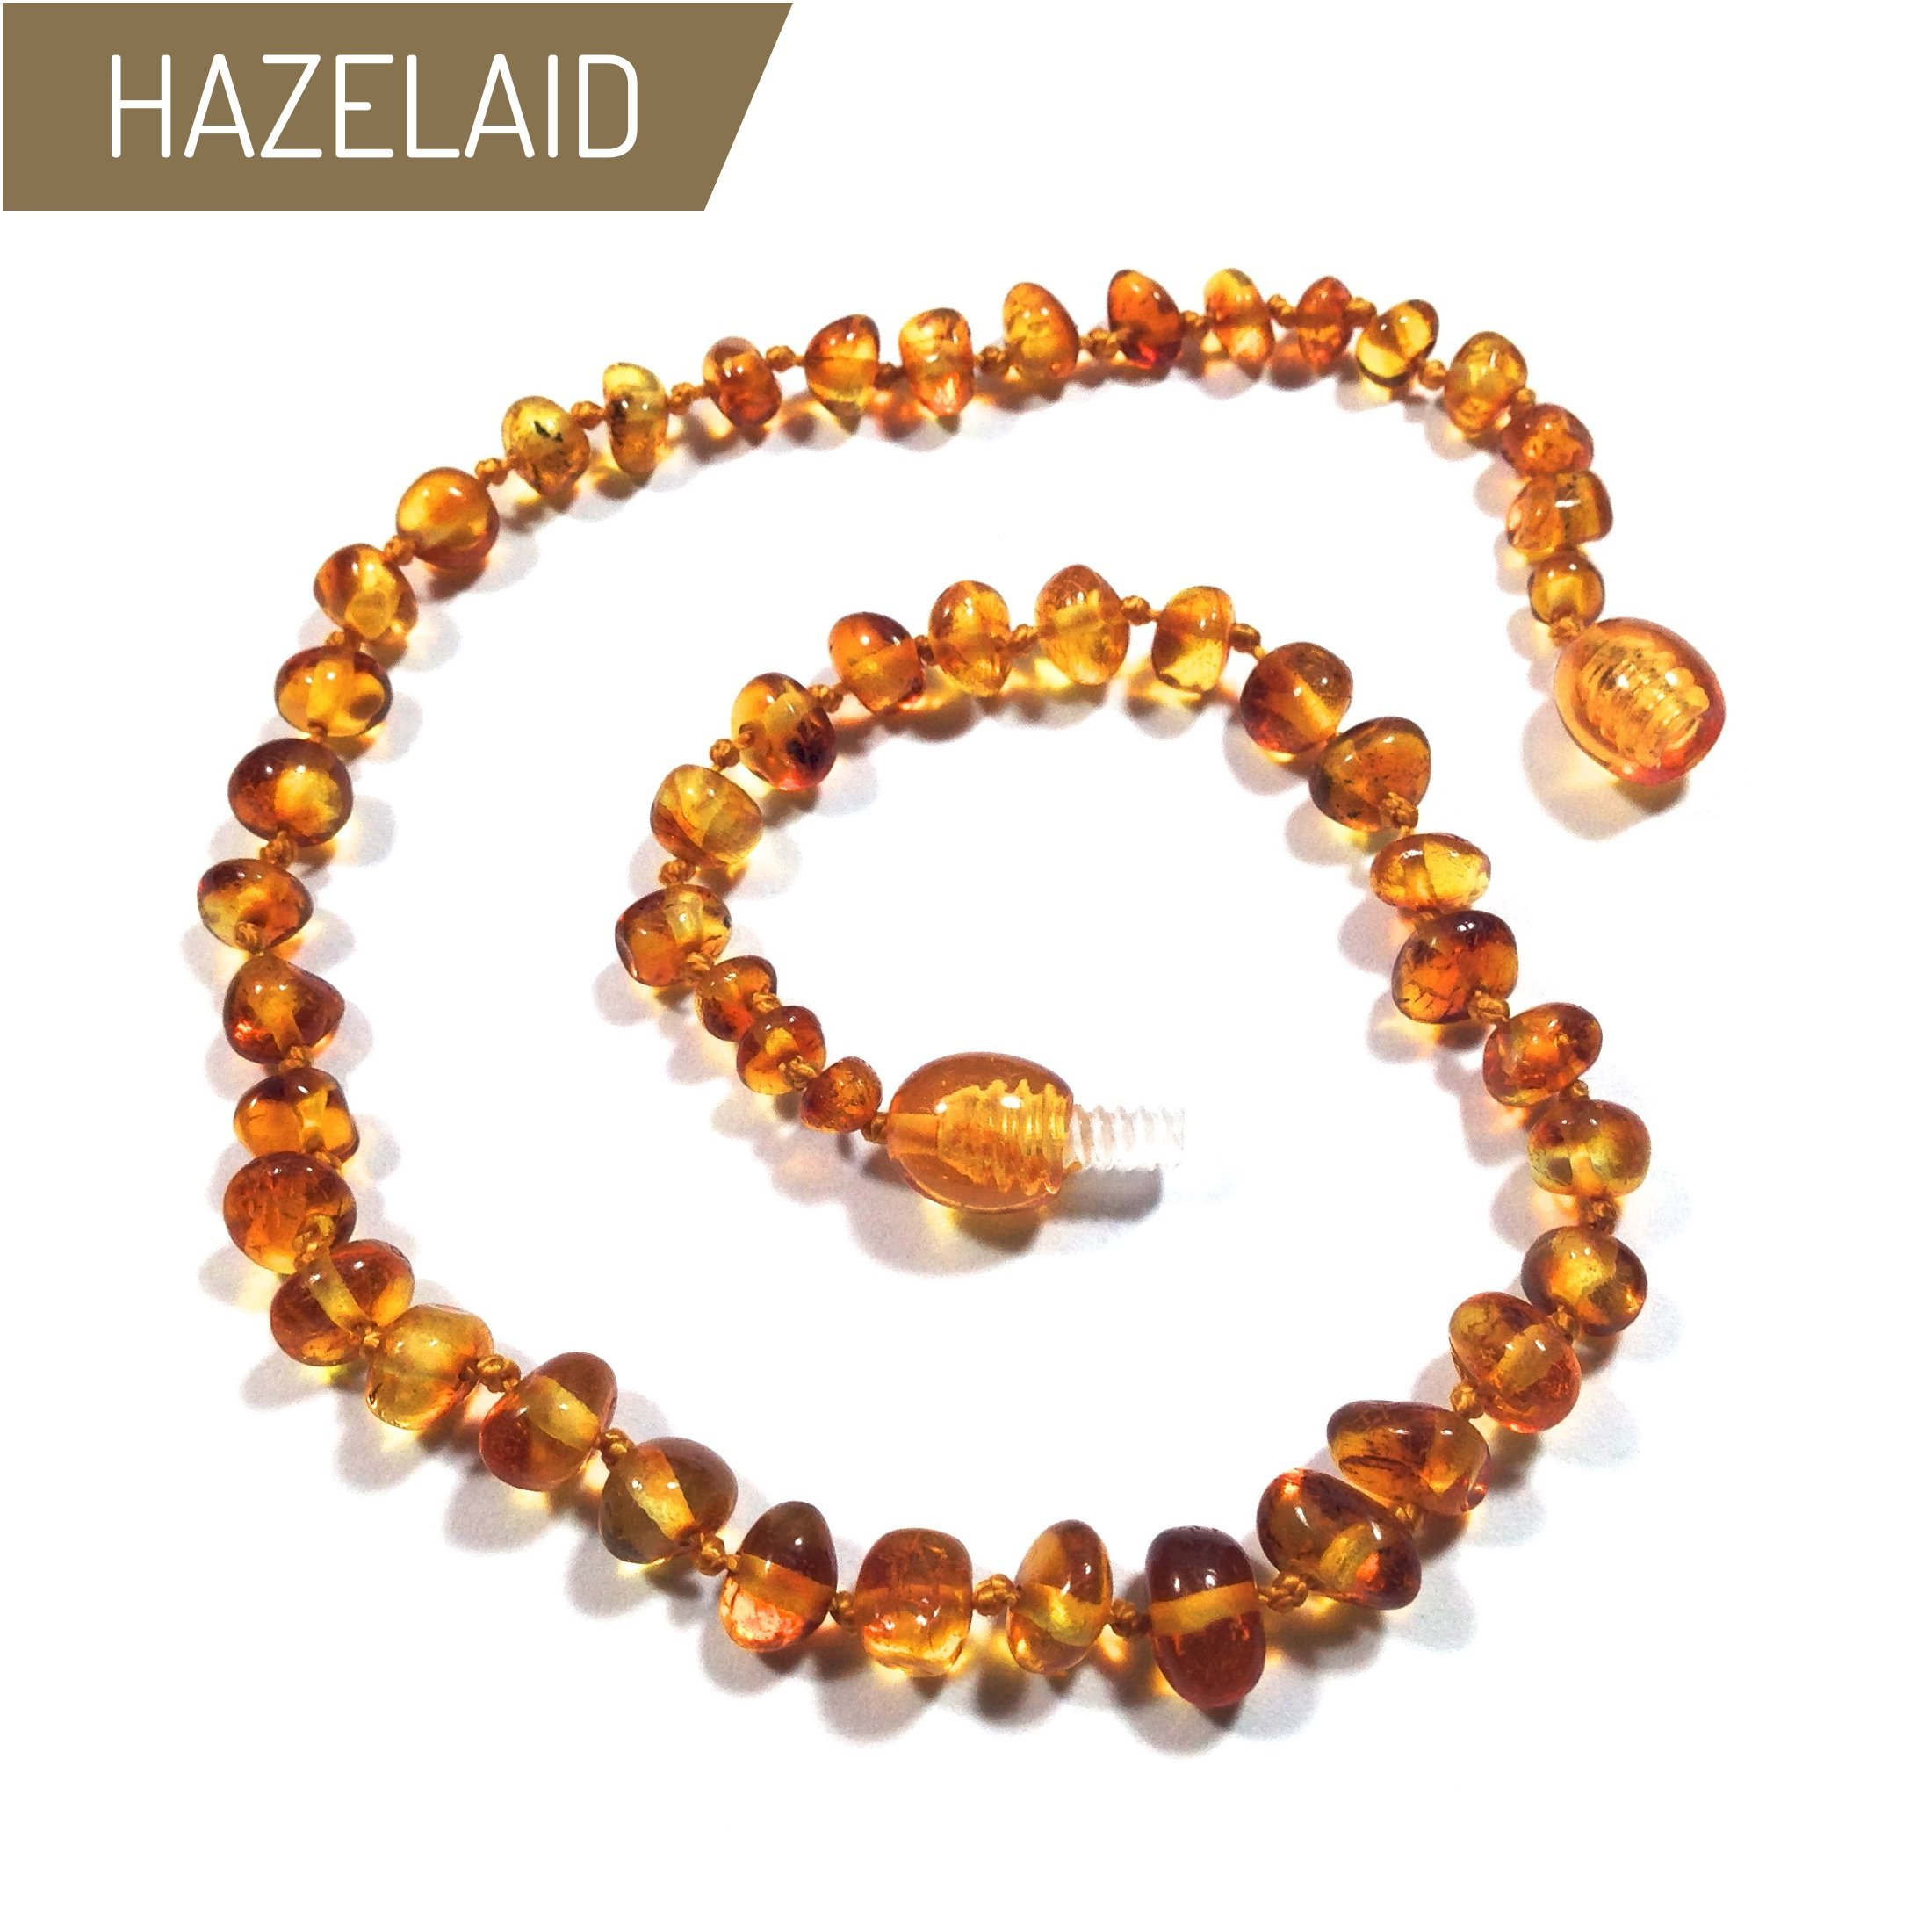 Hazelaid (TM) 12'' Baltic Amber Honey Necklace